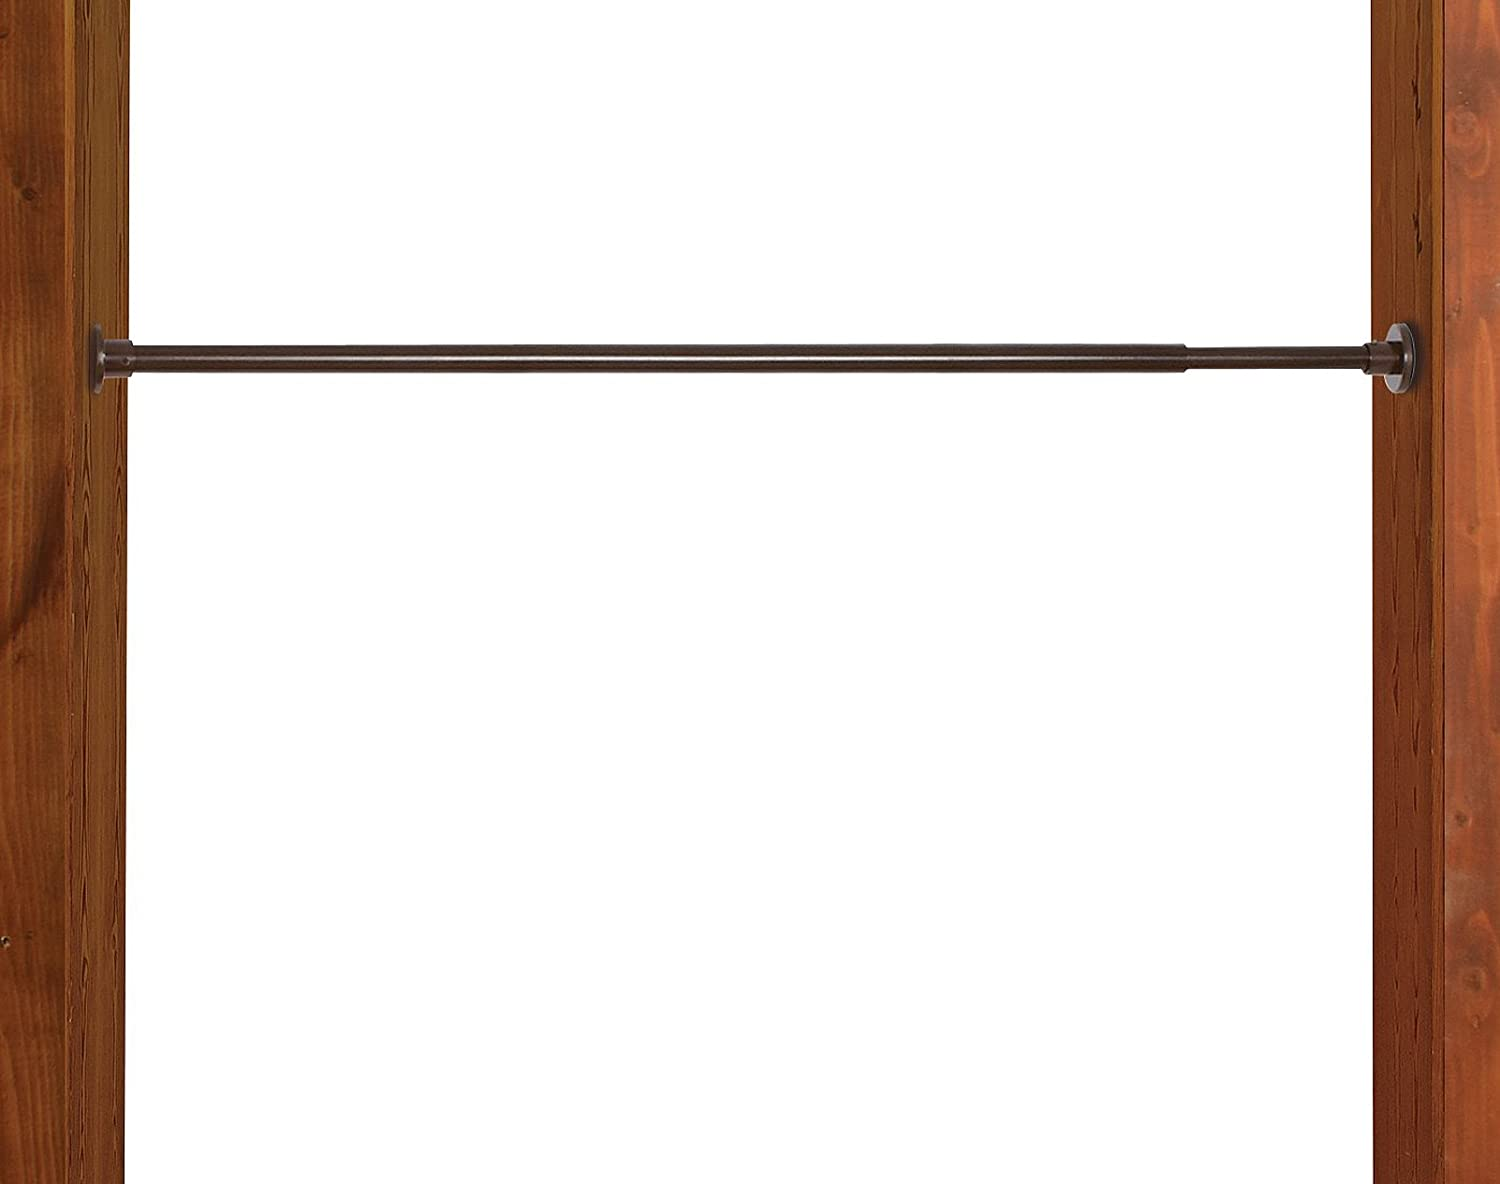 Wood curtain rods 120 inches long - Amazon Com Versailles Home Fashions Stainless Steel Indoor And Outdoor 66 120 Inch Duo Tension Rod 3 4 Inch Diameter Espresso Home Kitchen